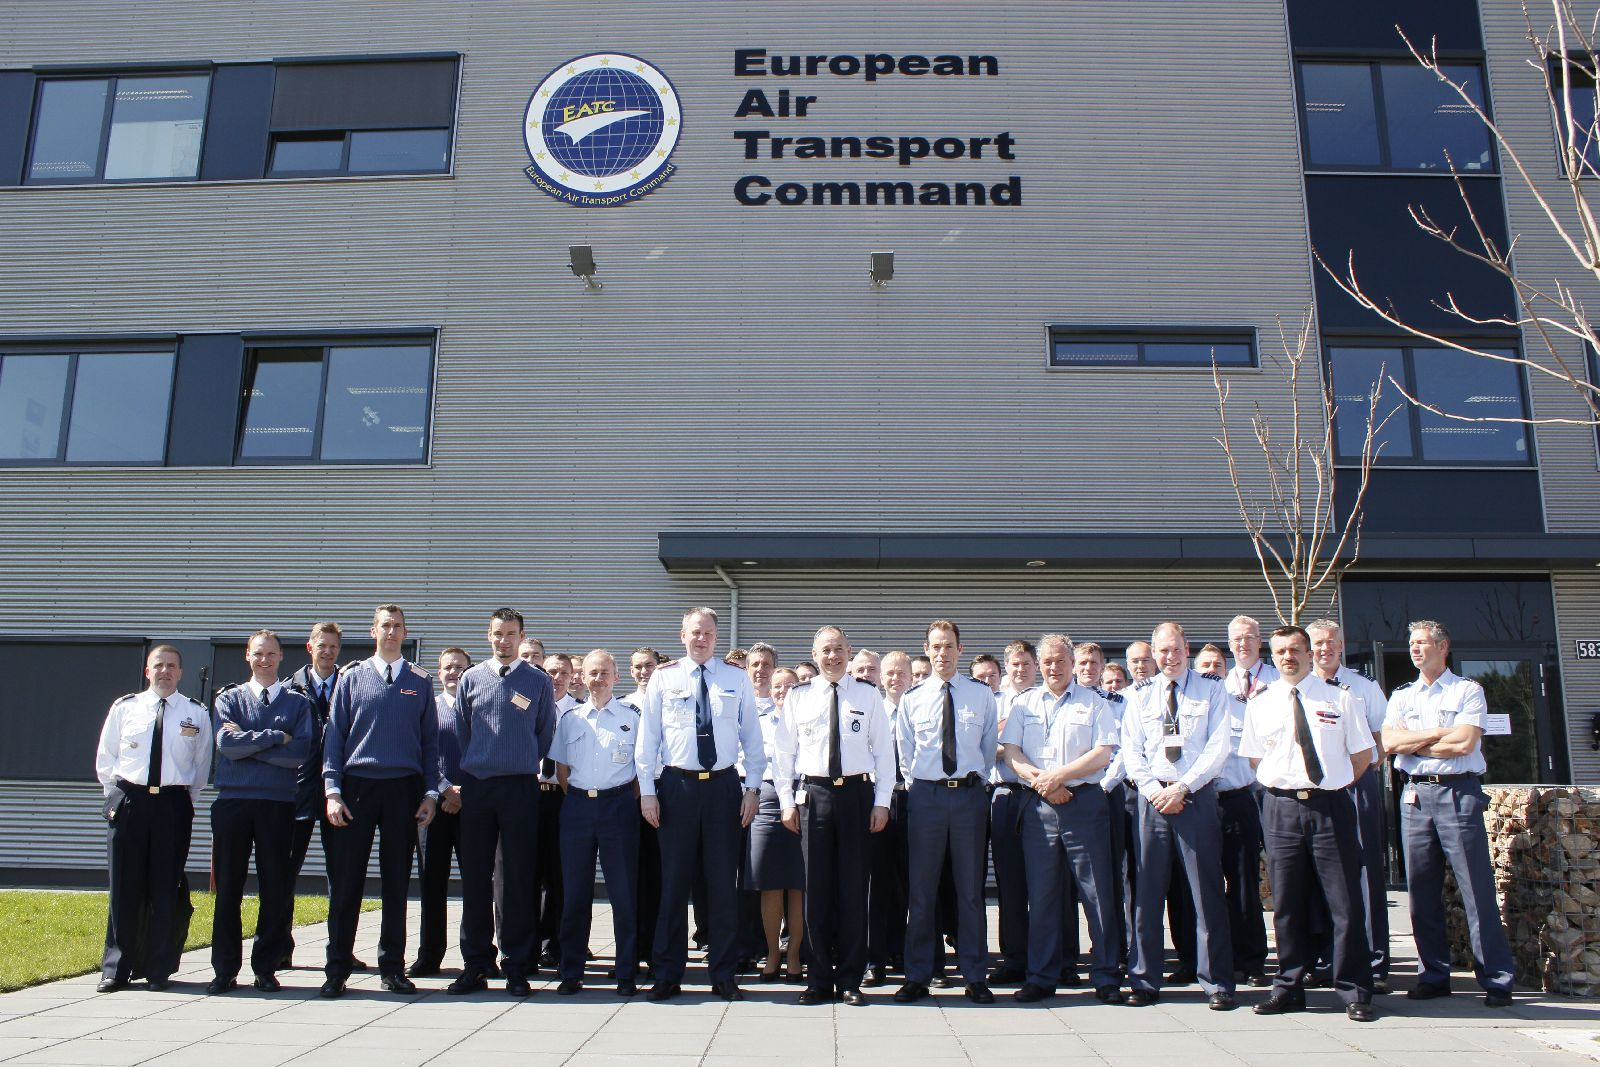 3rd EATC Commanders Conference at Eindhoven Air Base